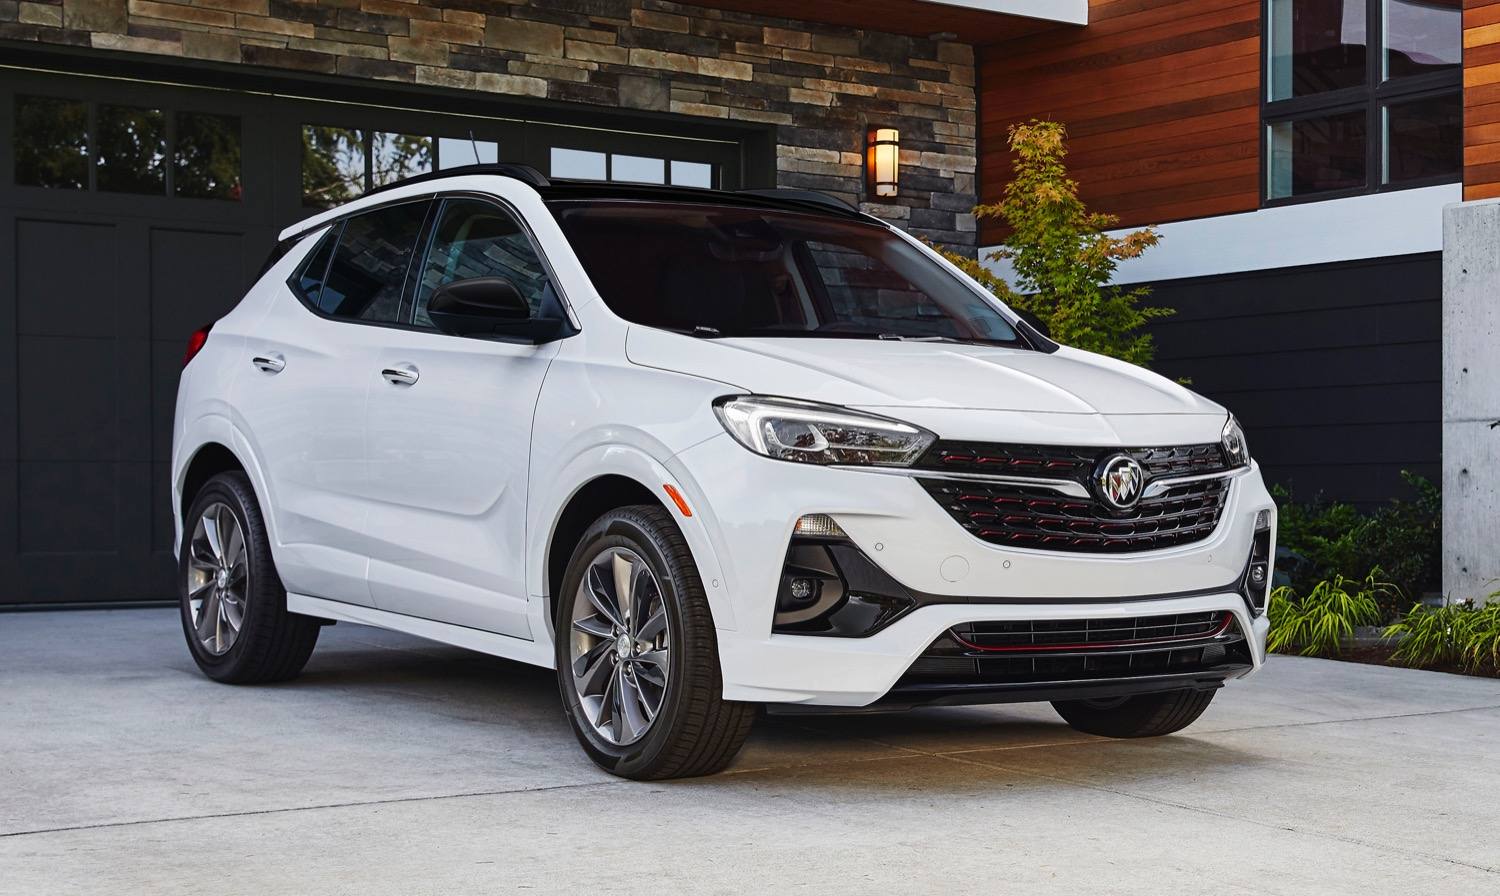 2020 Buick Encore Gx Vs. Buick Encore: Weight Comparison Difference Between New 2022 Buick Encore And Encore Gx